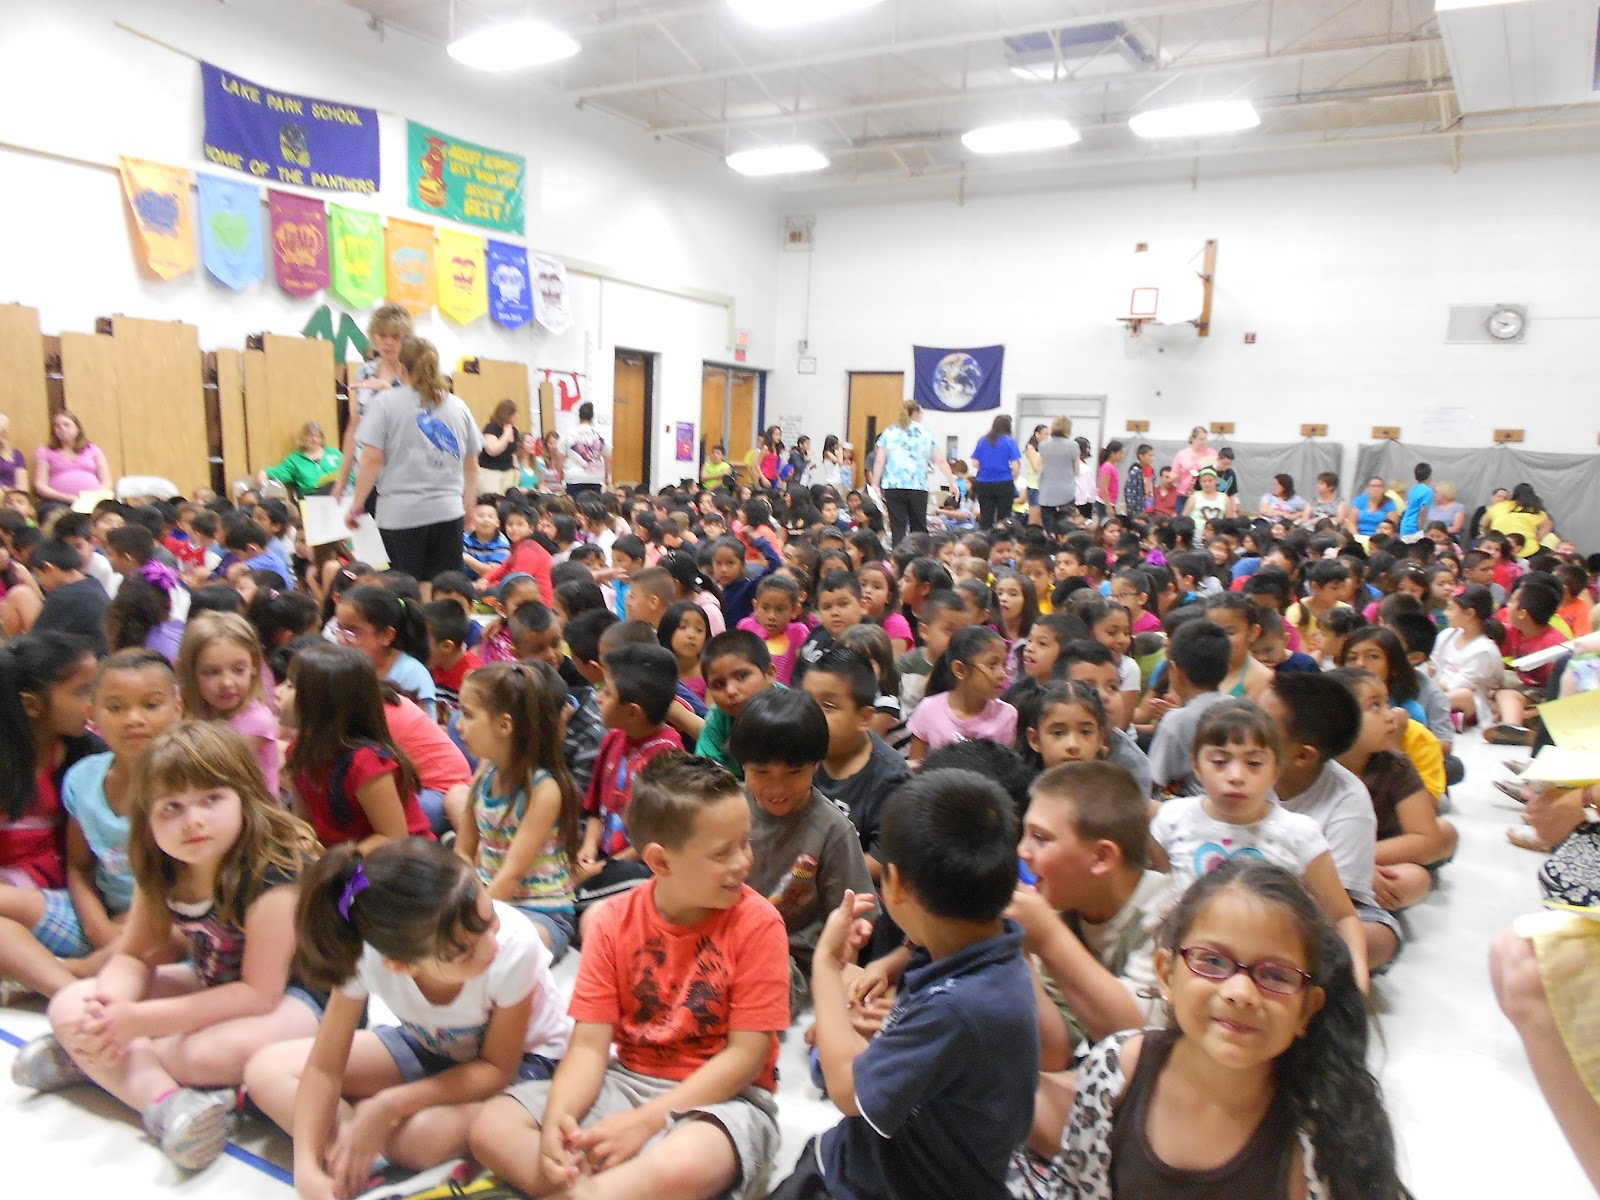 Humanitarian Service Project Hsp Picks Golden Ticket Winners During Visit To Lake Park Elementary